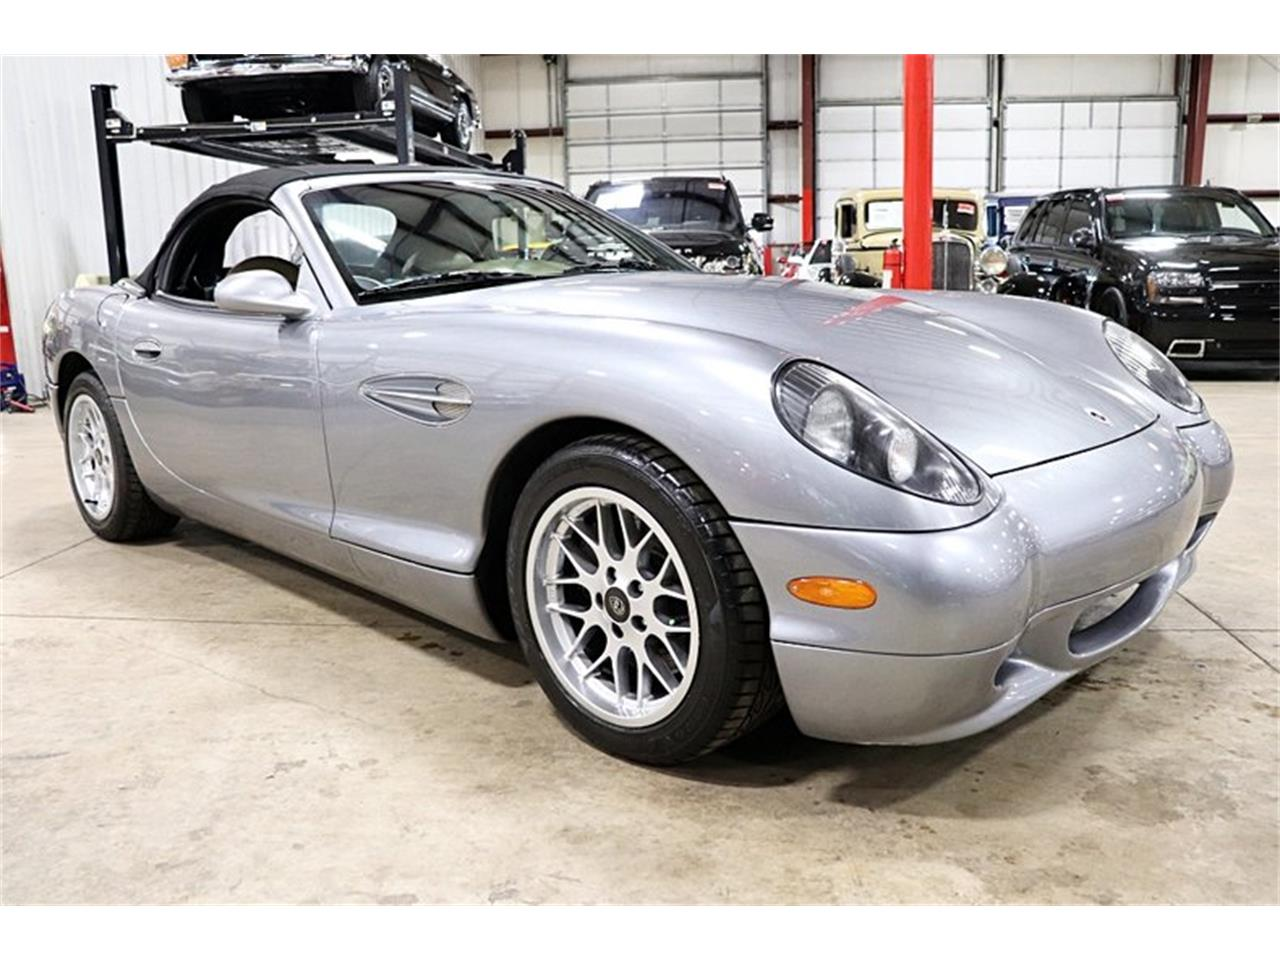 2001 Panoz Esperante for sale in Kentwood, MI – photo 79